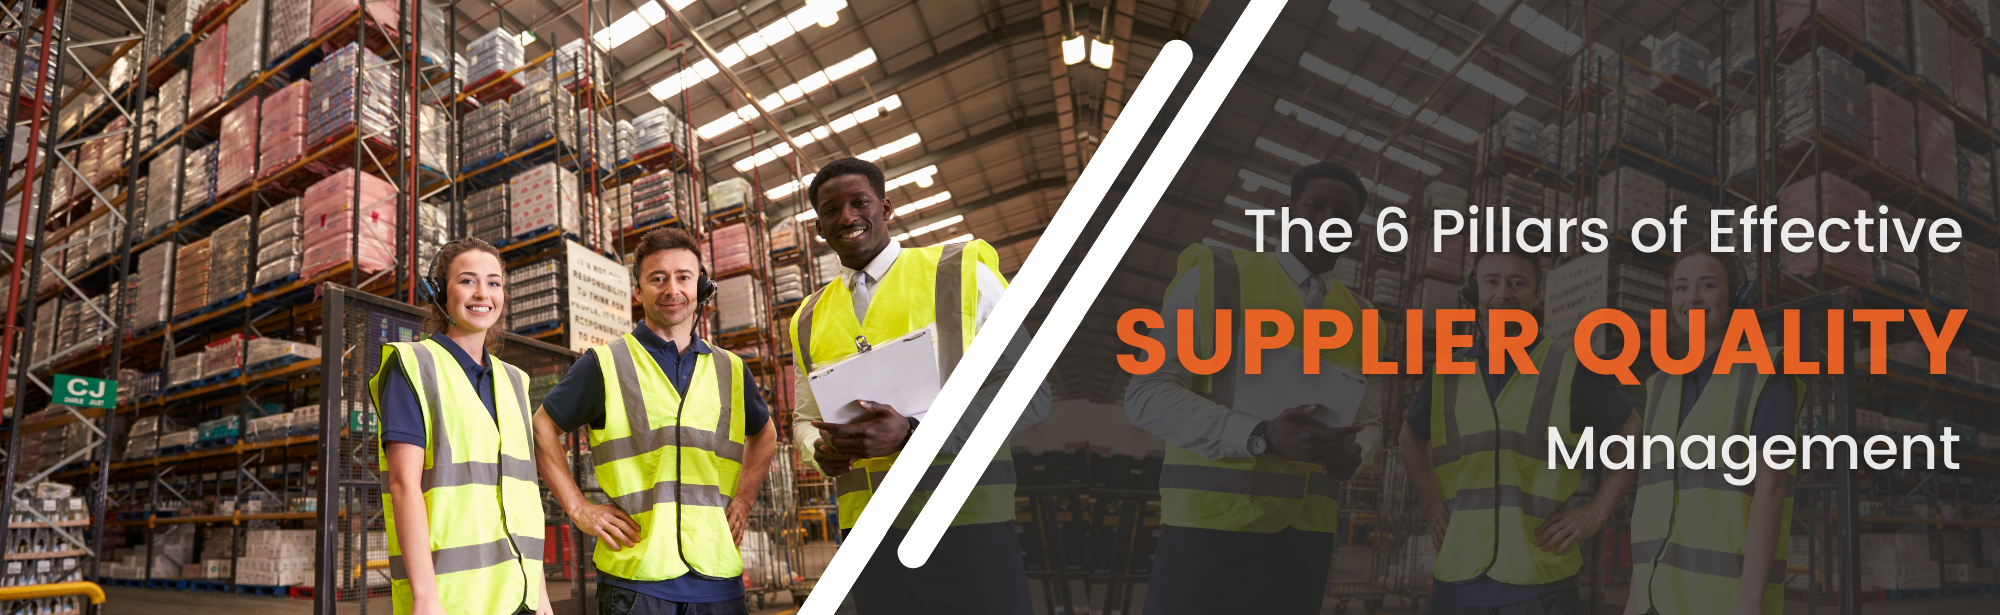 The 6 Pillars of Effective Supplier Quality Management Blog Post SafetyChain